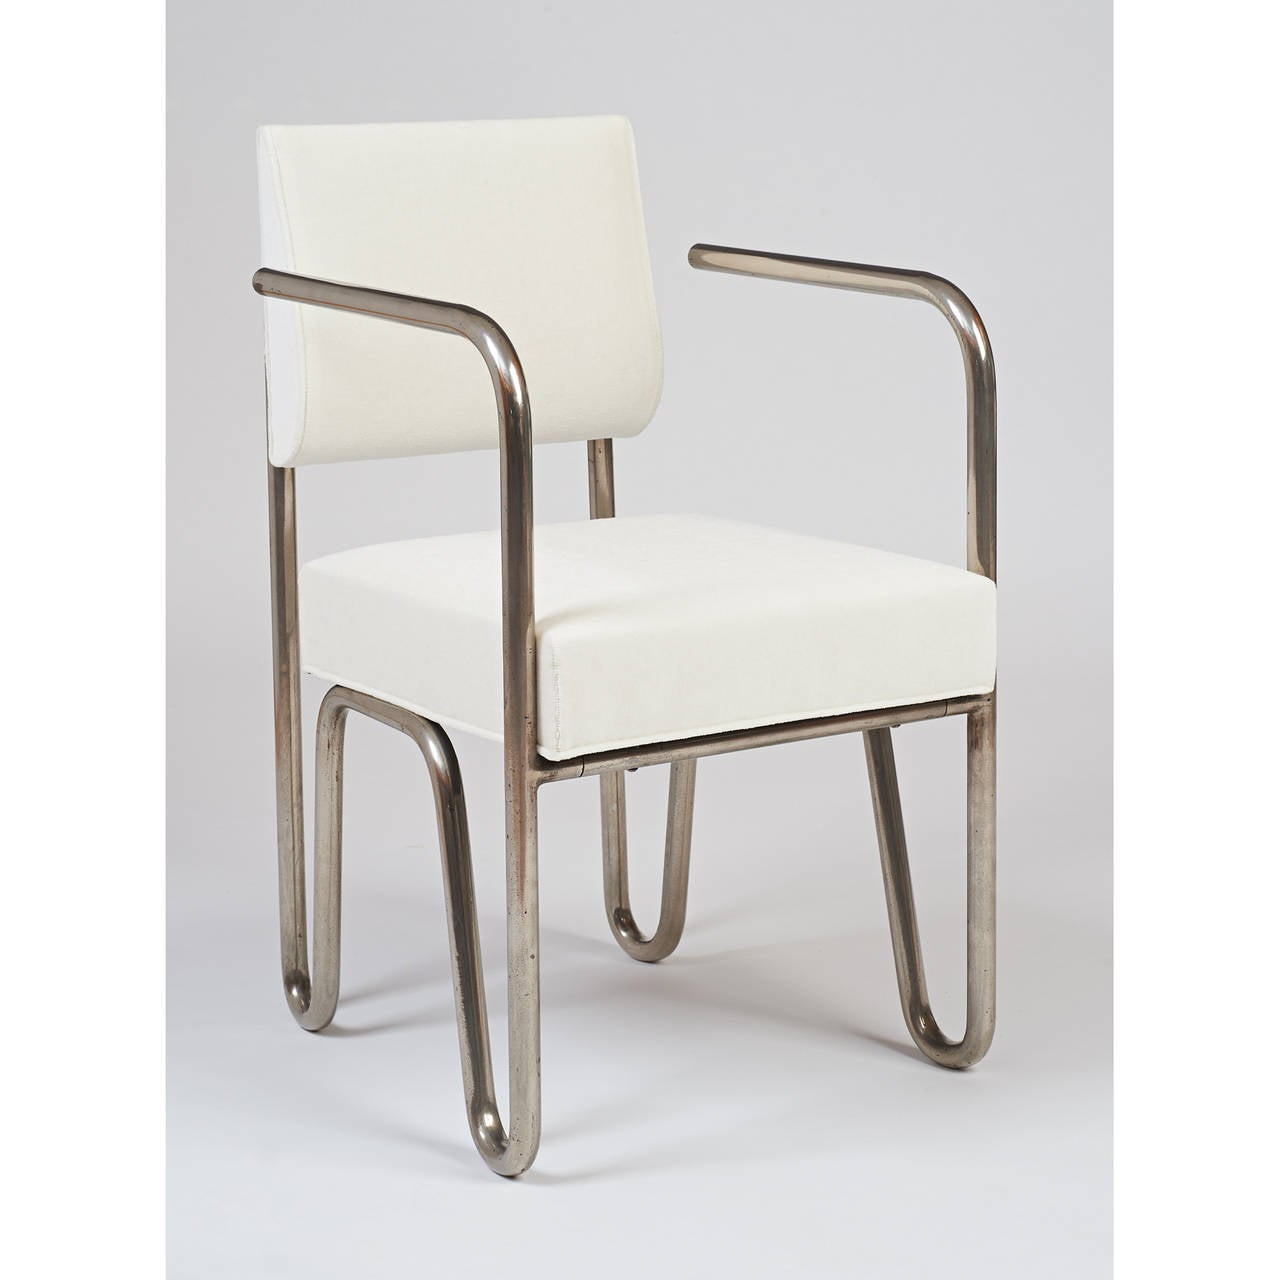 Early Pair of Tubular Metal Chairs by Andre Sornay, ca. 1929 3